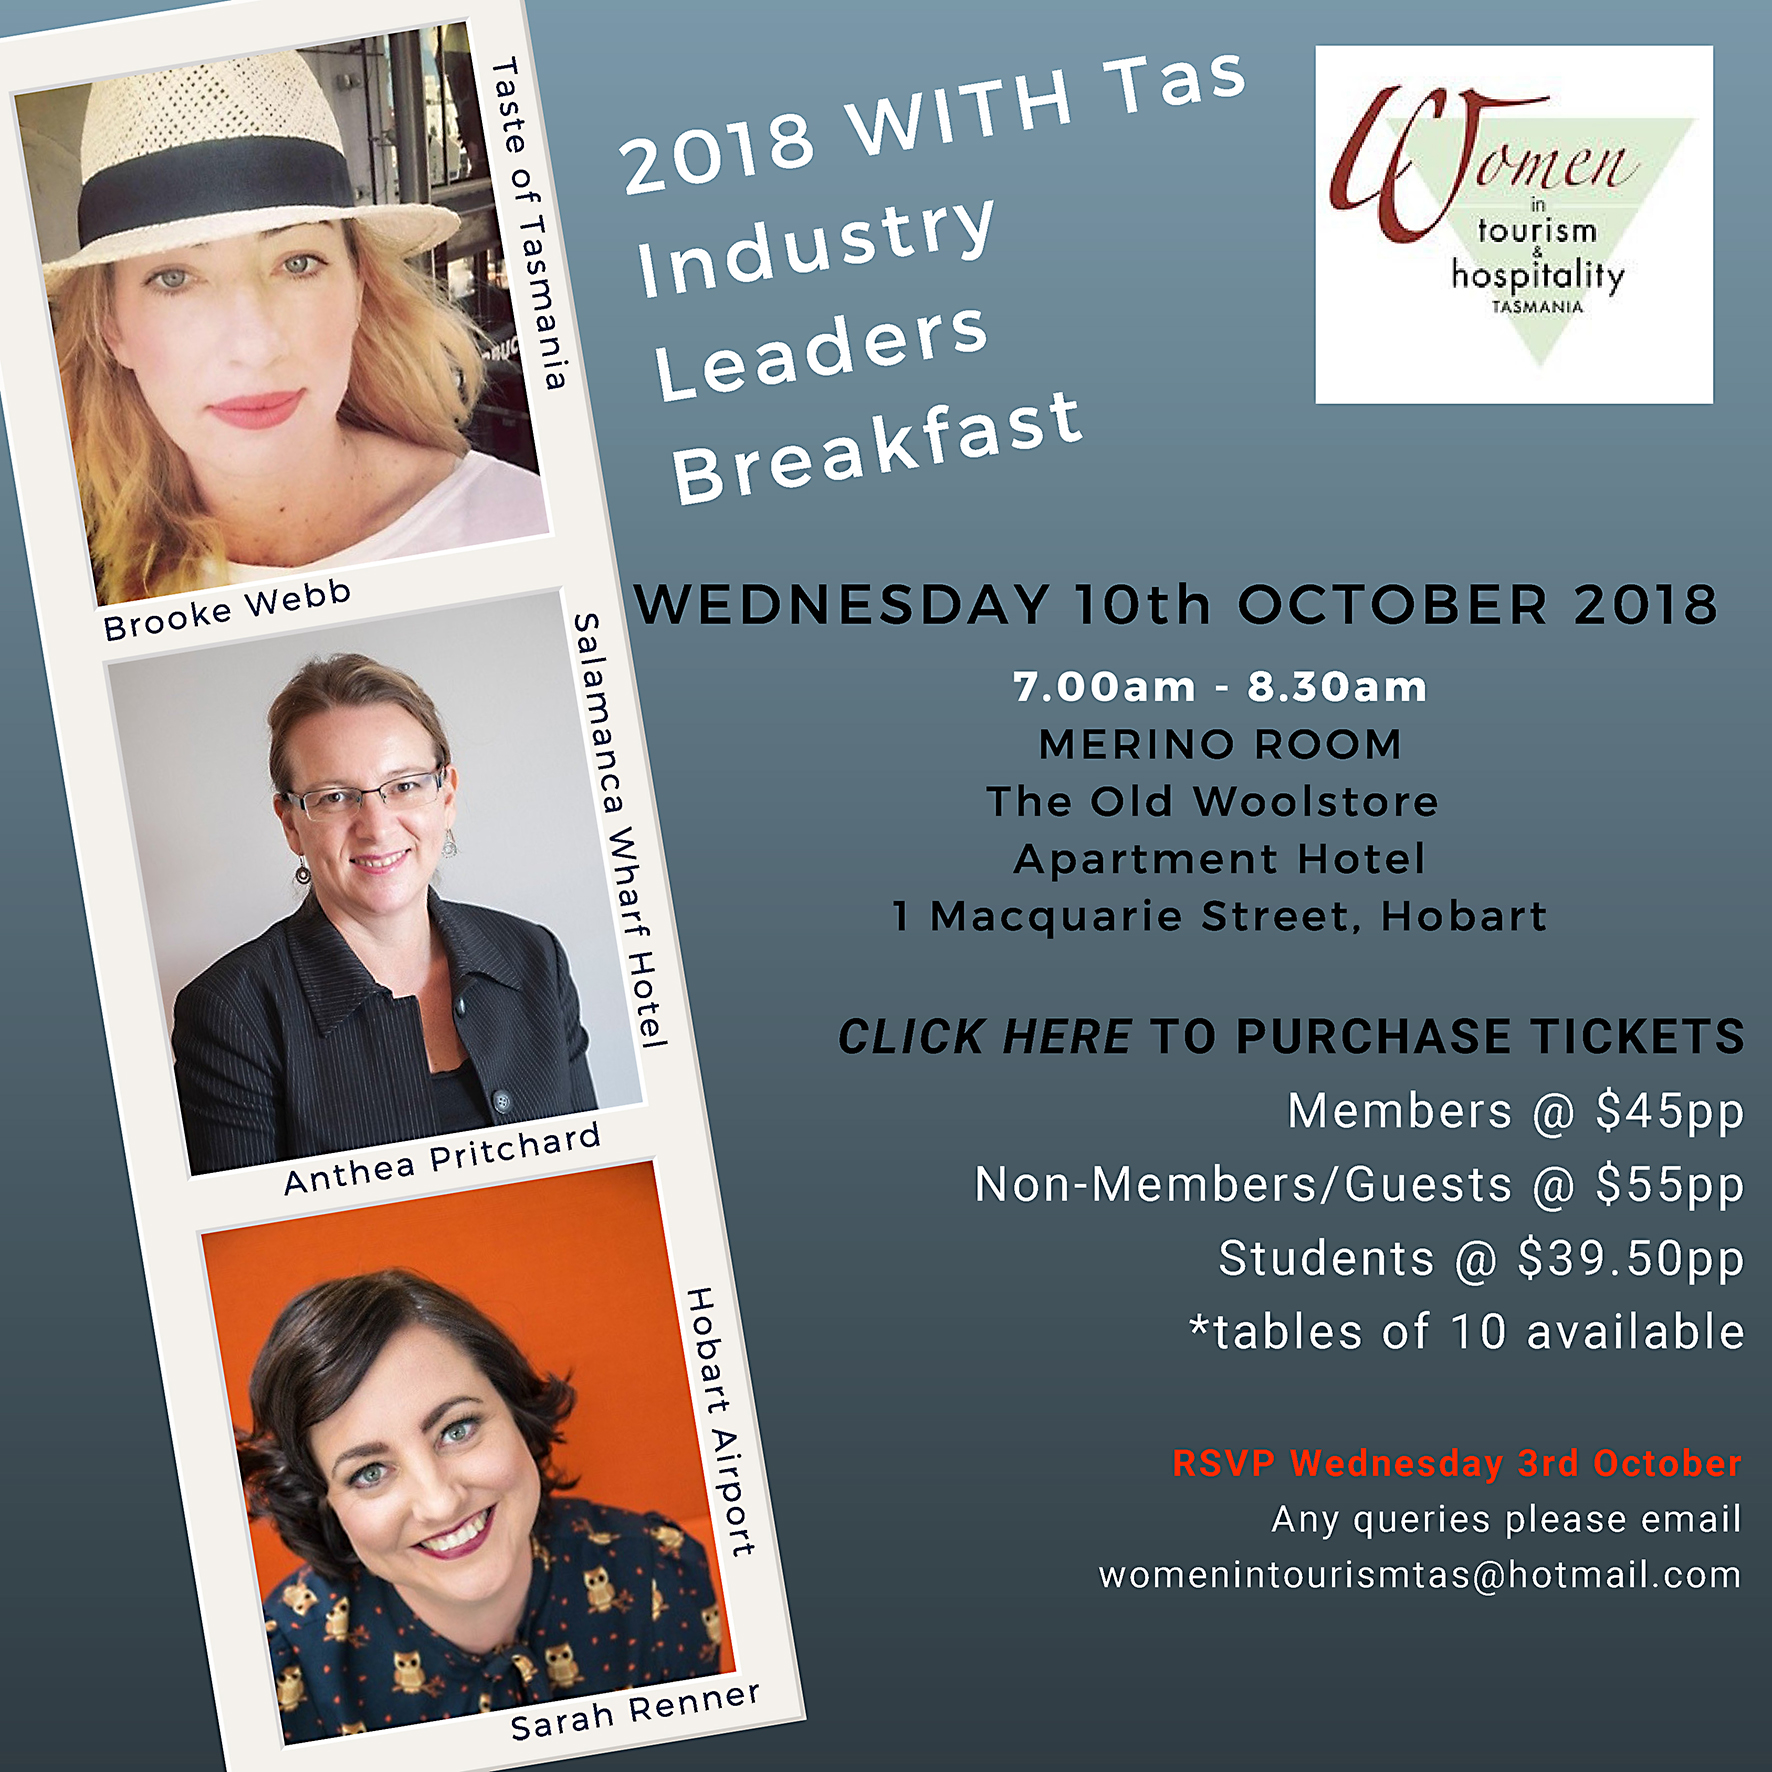 Women in Tourism & Hospitality Tasmania - Leaders Breakfast 2018